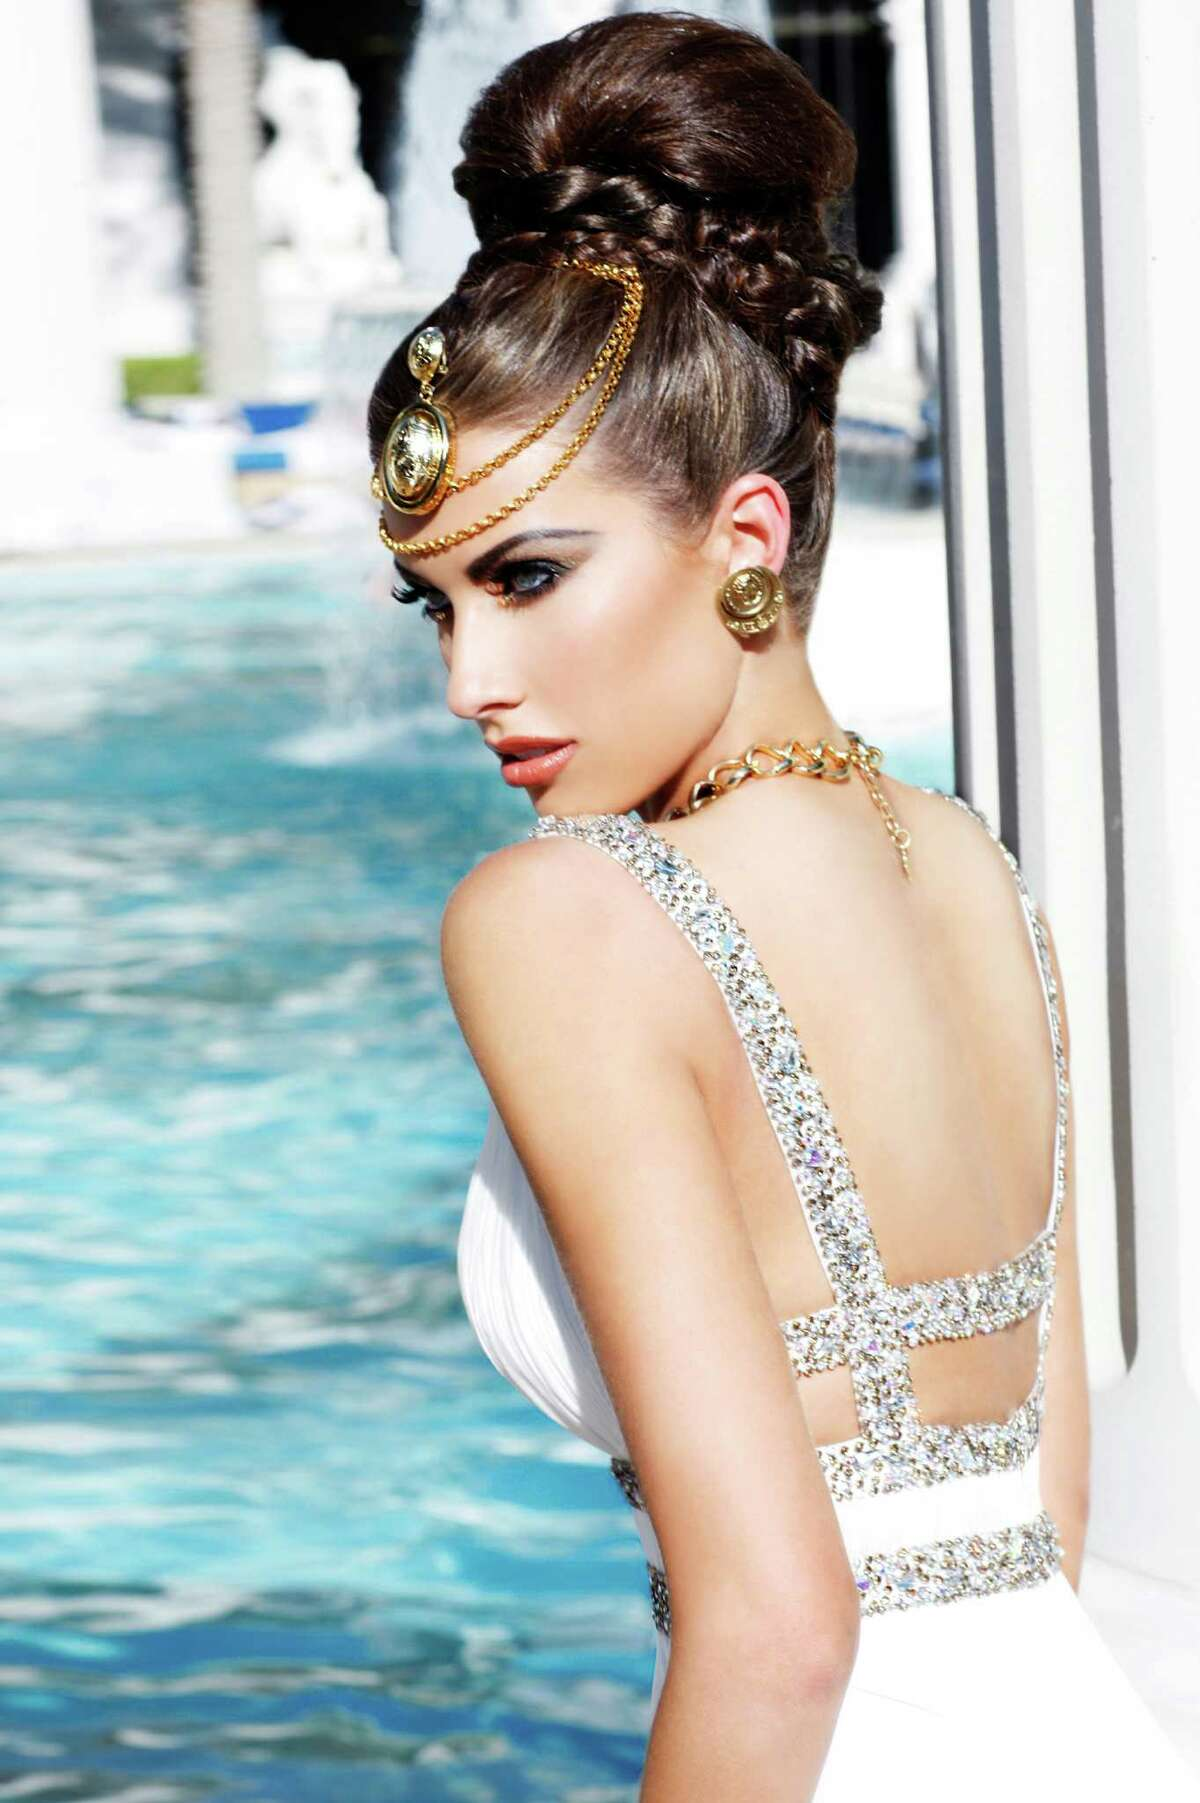 Miss Alabama USA 2012 Katherine Webb poses for fashion photographer Fadil Berisha in May 2012 at the